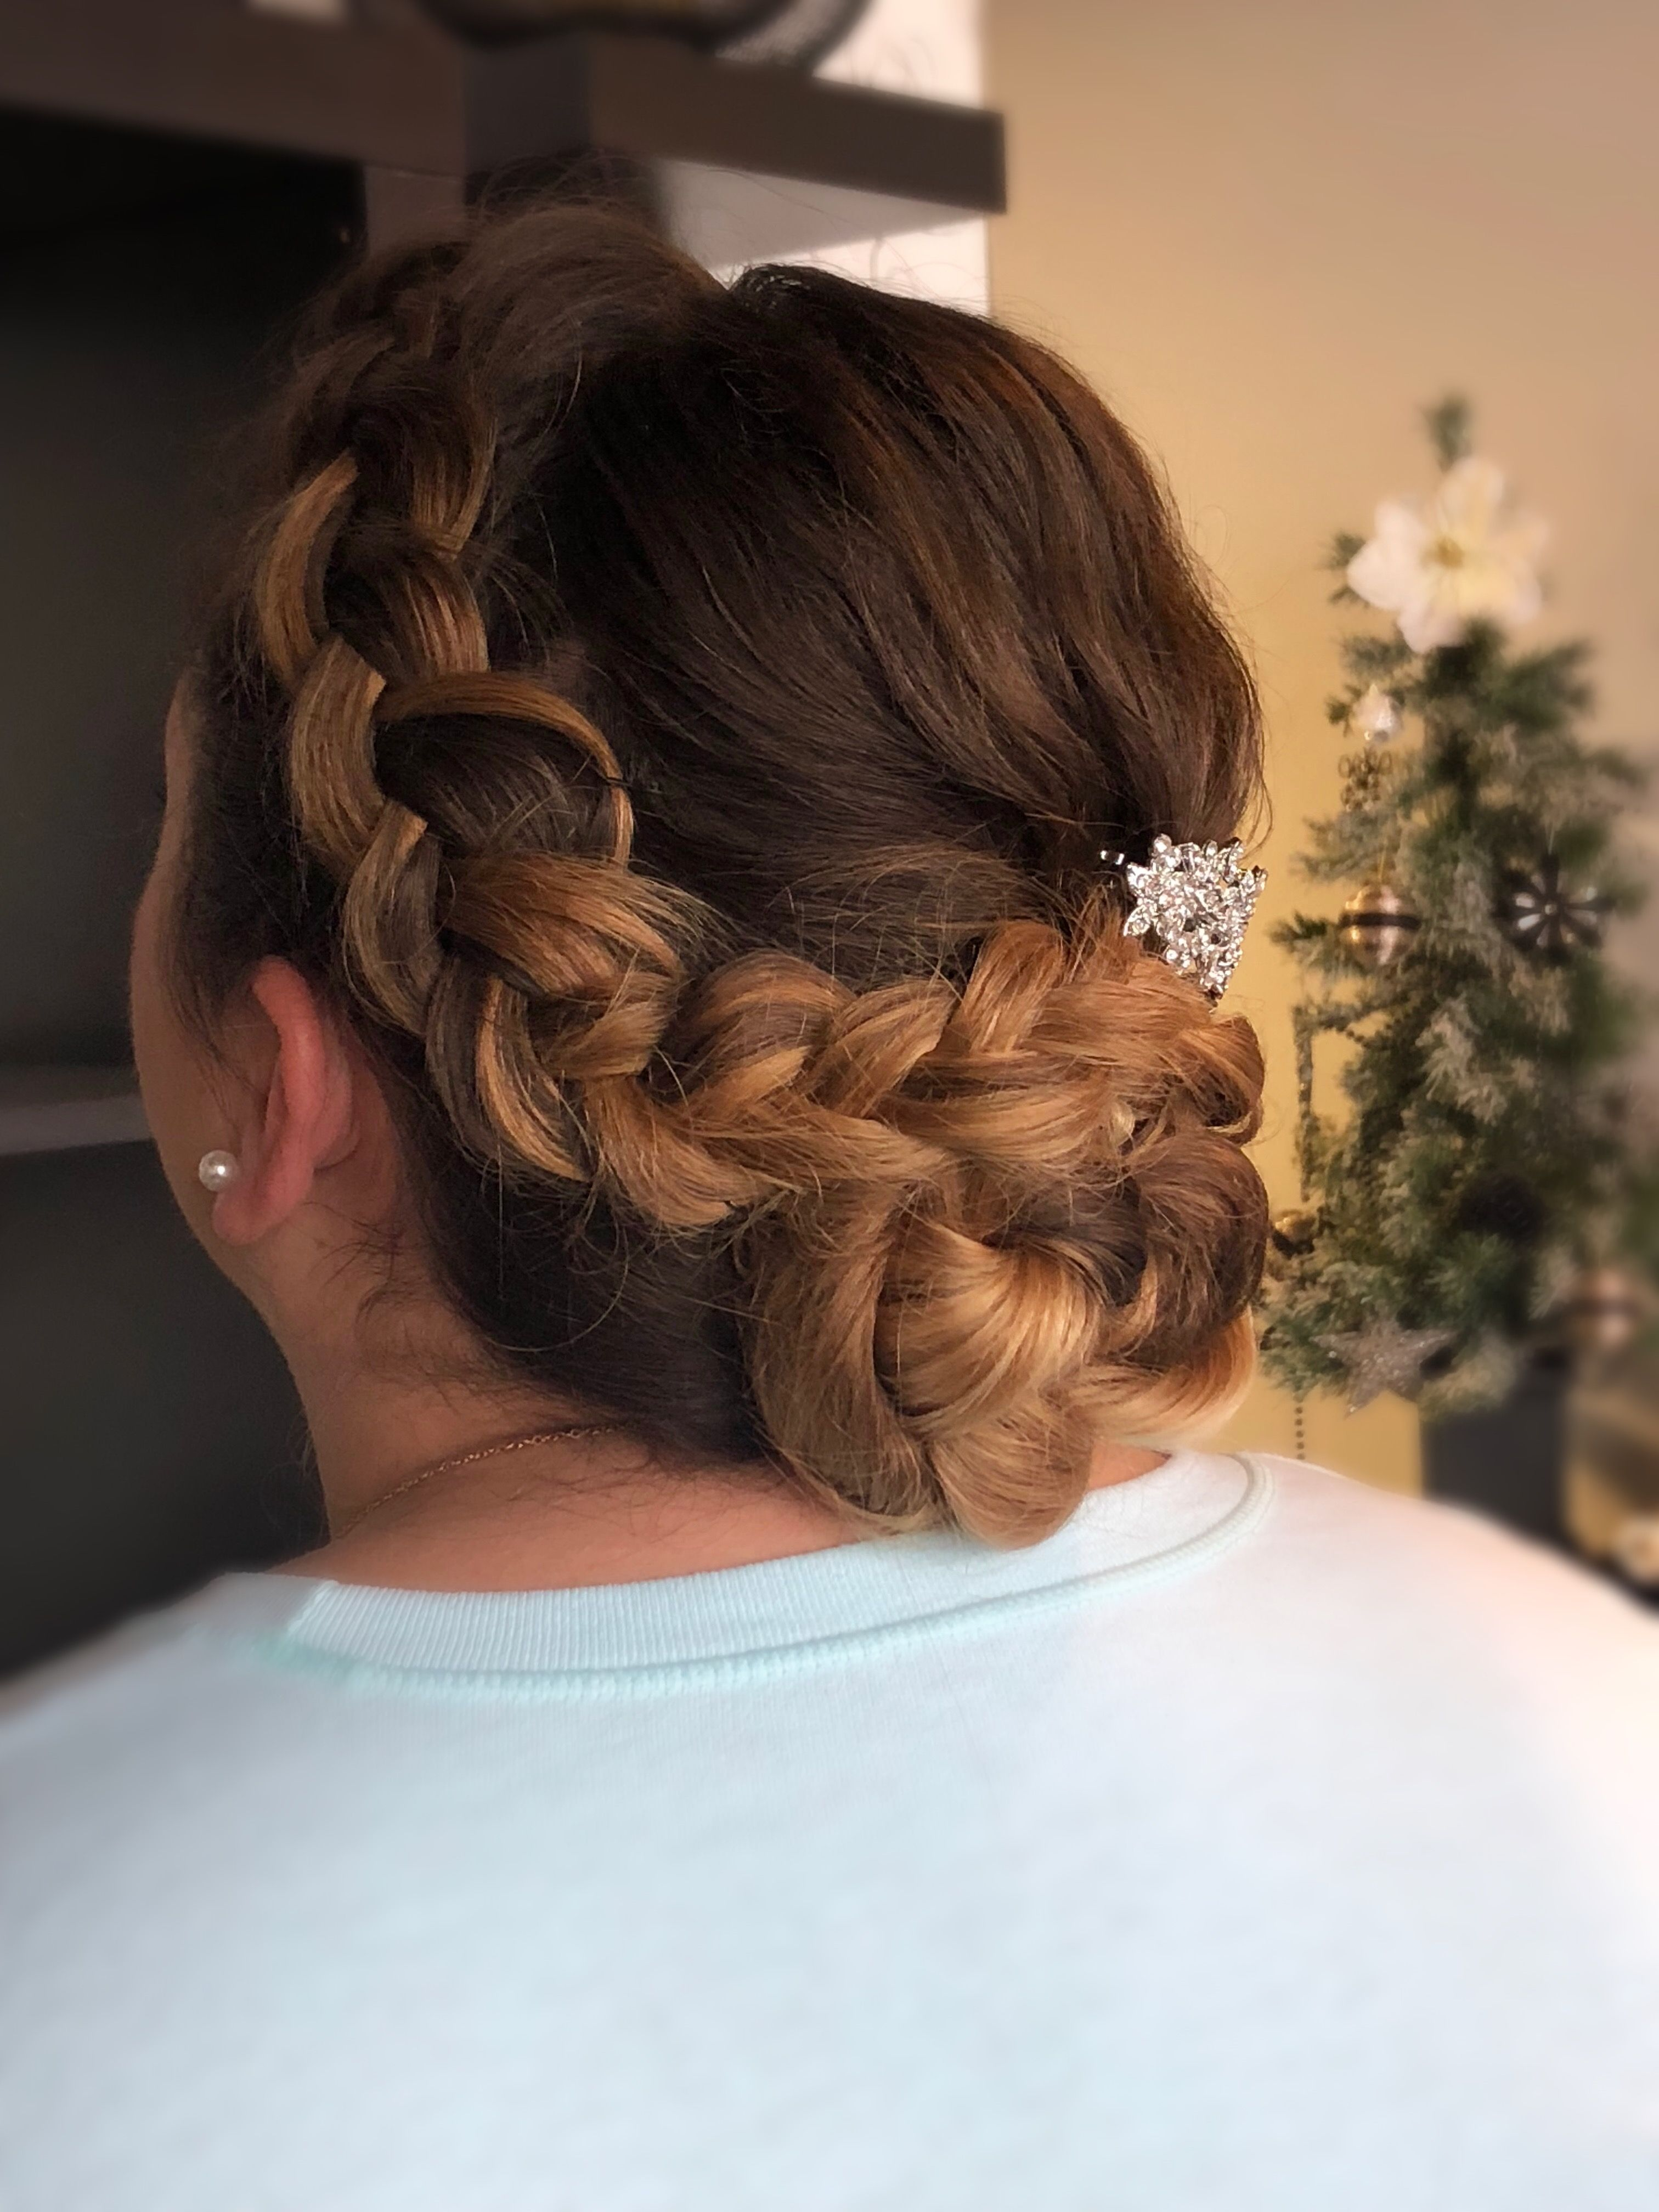 bridal updo by jillain at jluxe salon in syracuse new york